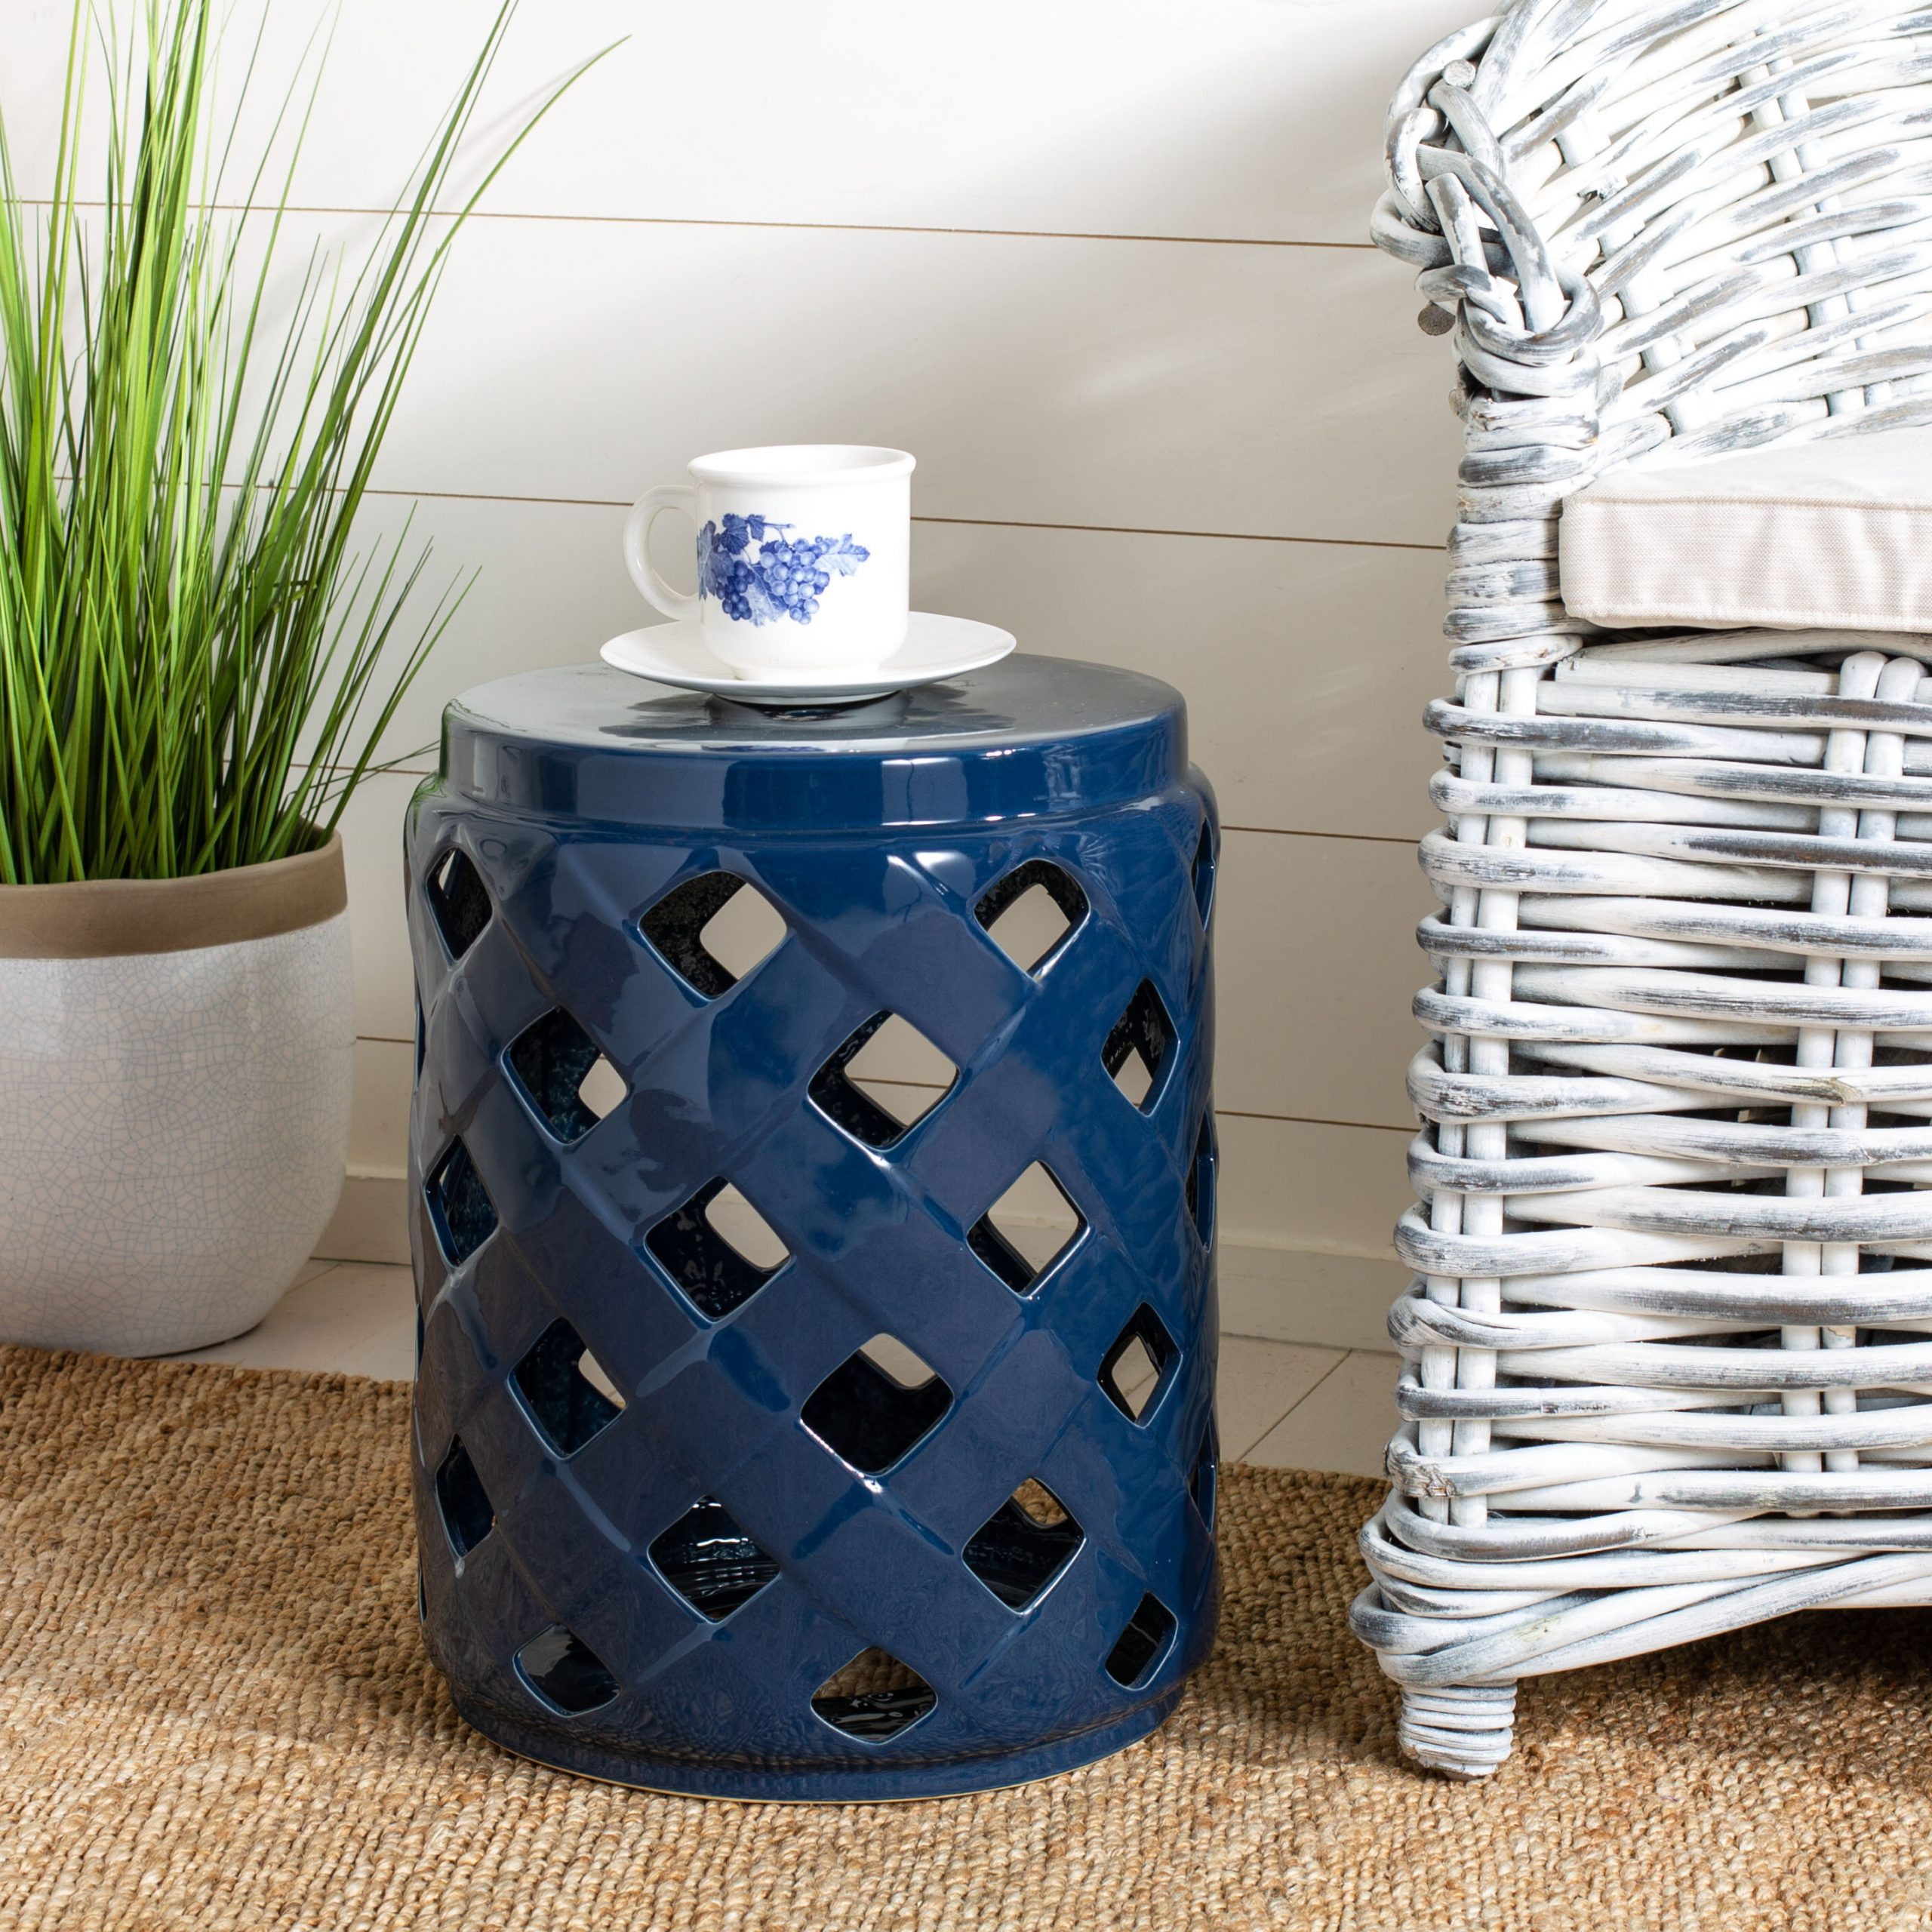 Popular Wiese Cherry Blossom Ceramic Garden Stools Intended For Garden Stools (View 14 of 30)